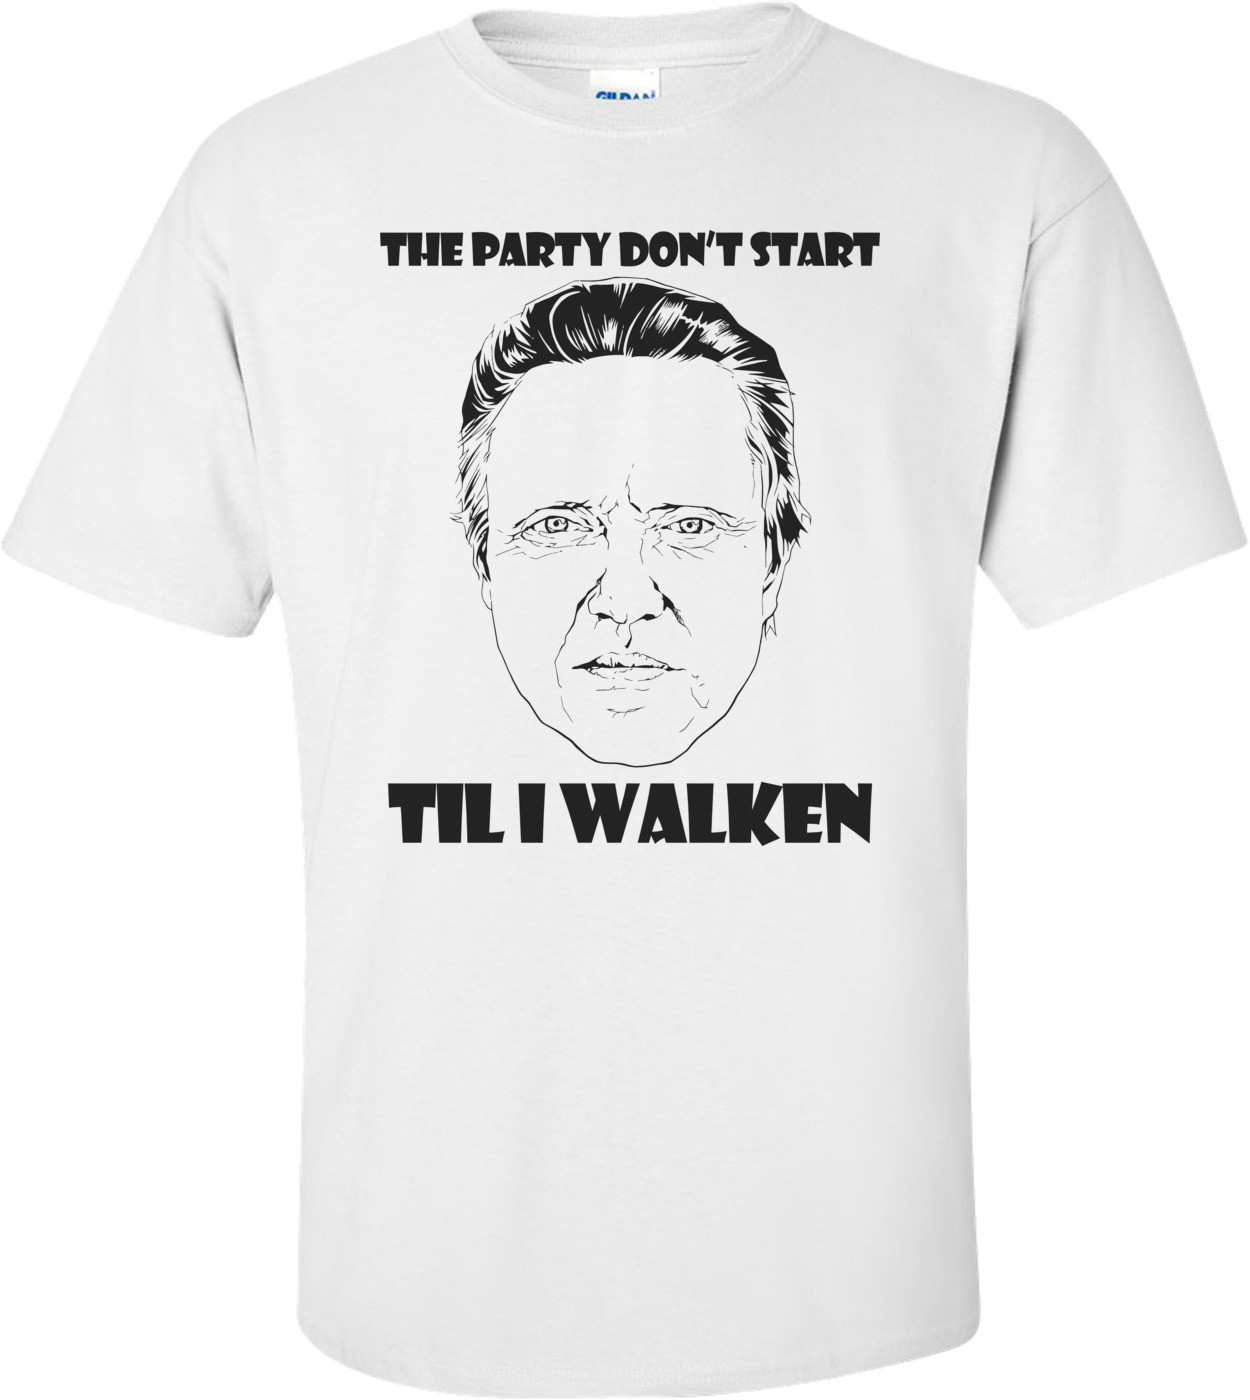 The Party Don't Start Til I Walken Shirt